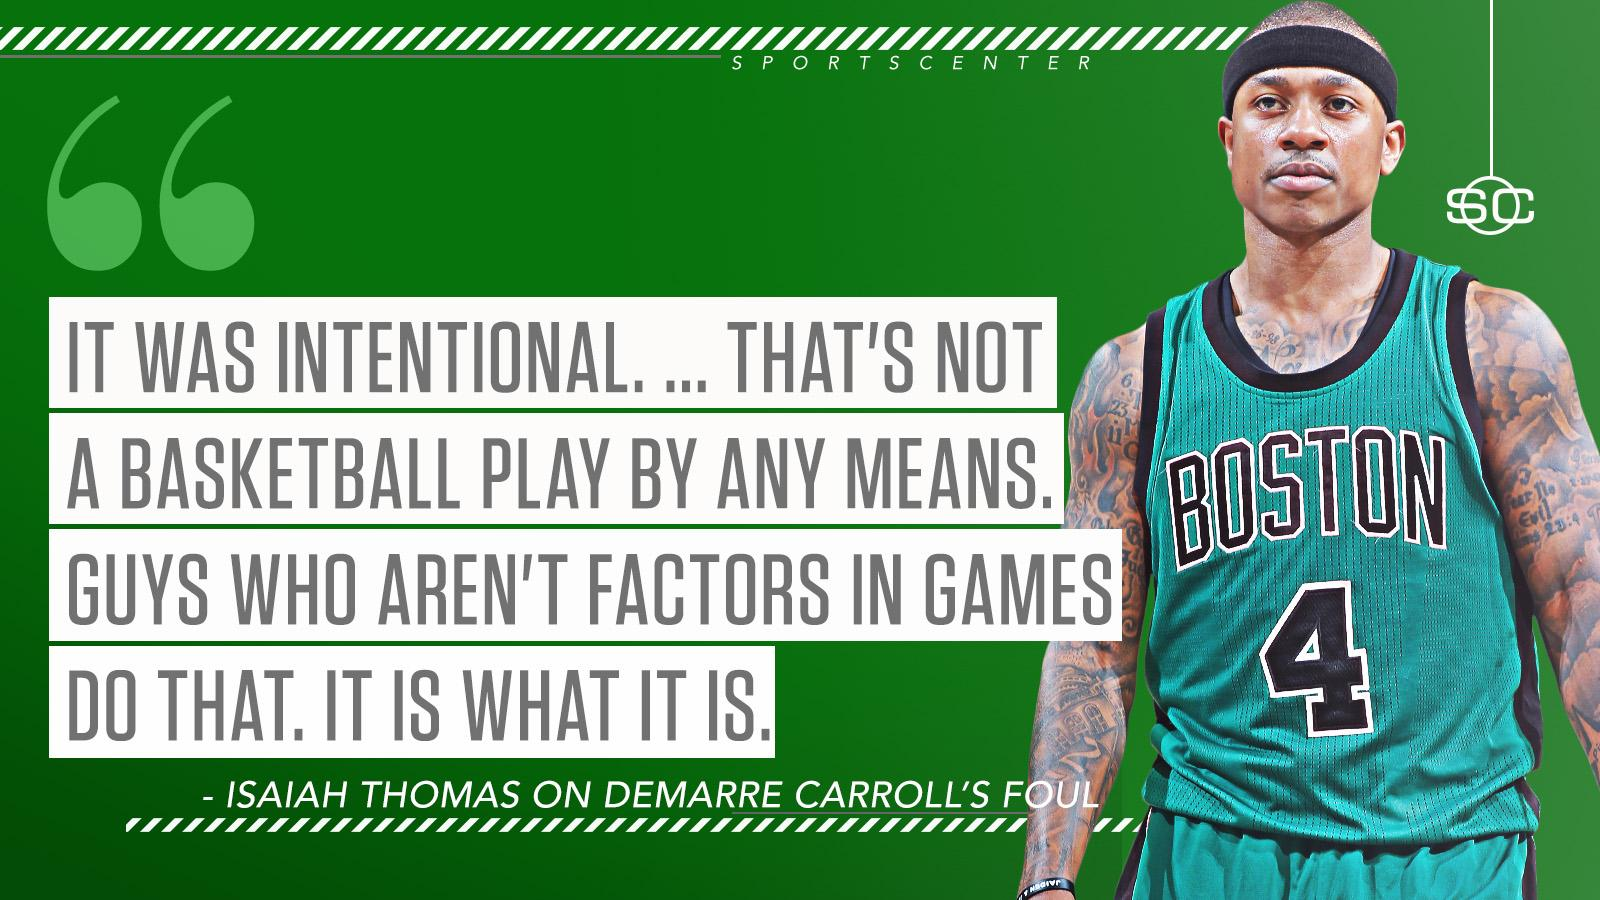 Isaiah Thomas called out DeMarre Carroll for his foul in last night's game. https://t.co/9A7MvbsQC1 https://t.co/myw7wdt1cf